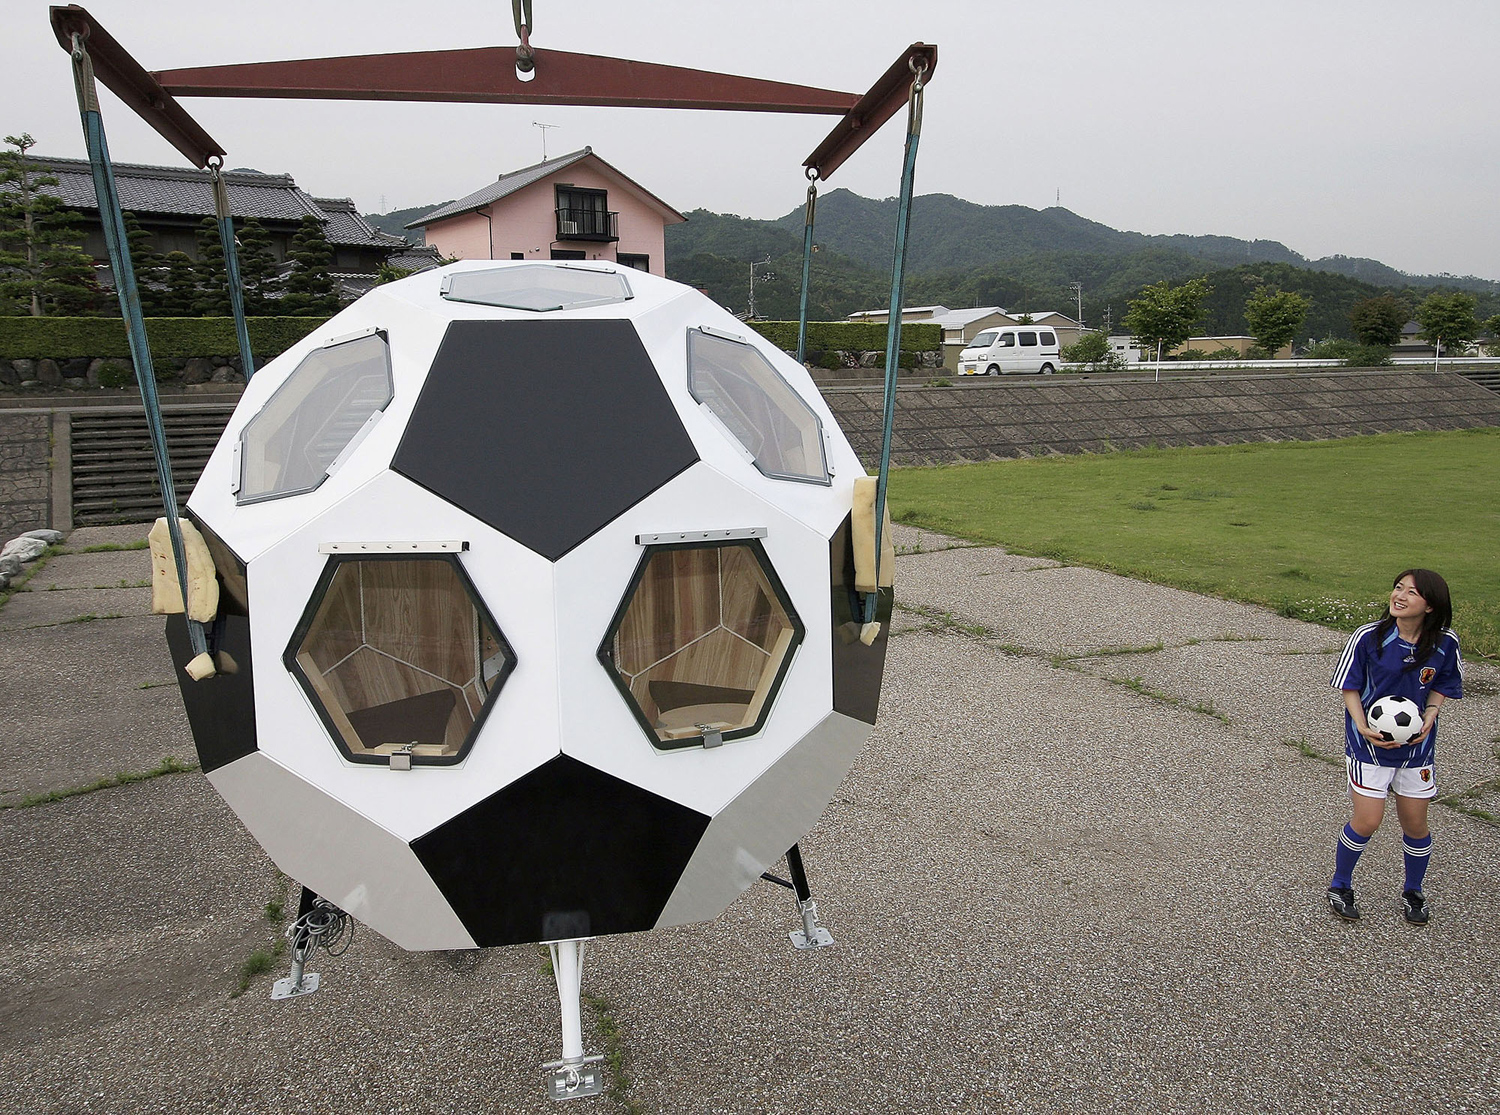 Strange Houses - Soccer ball shaped home